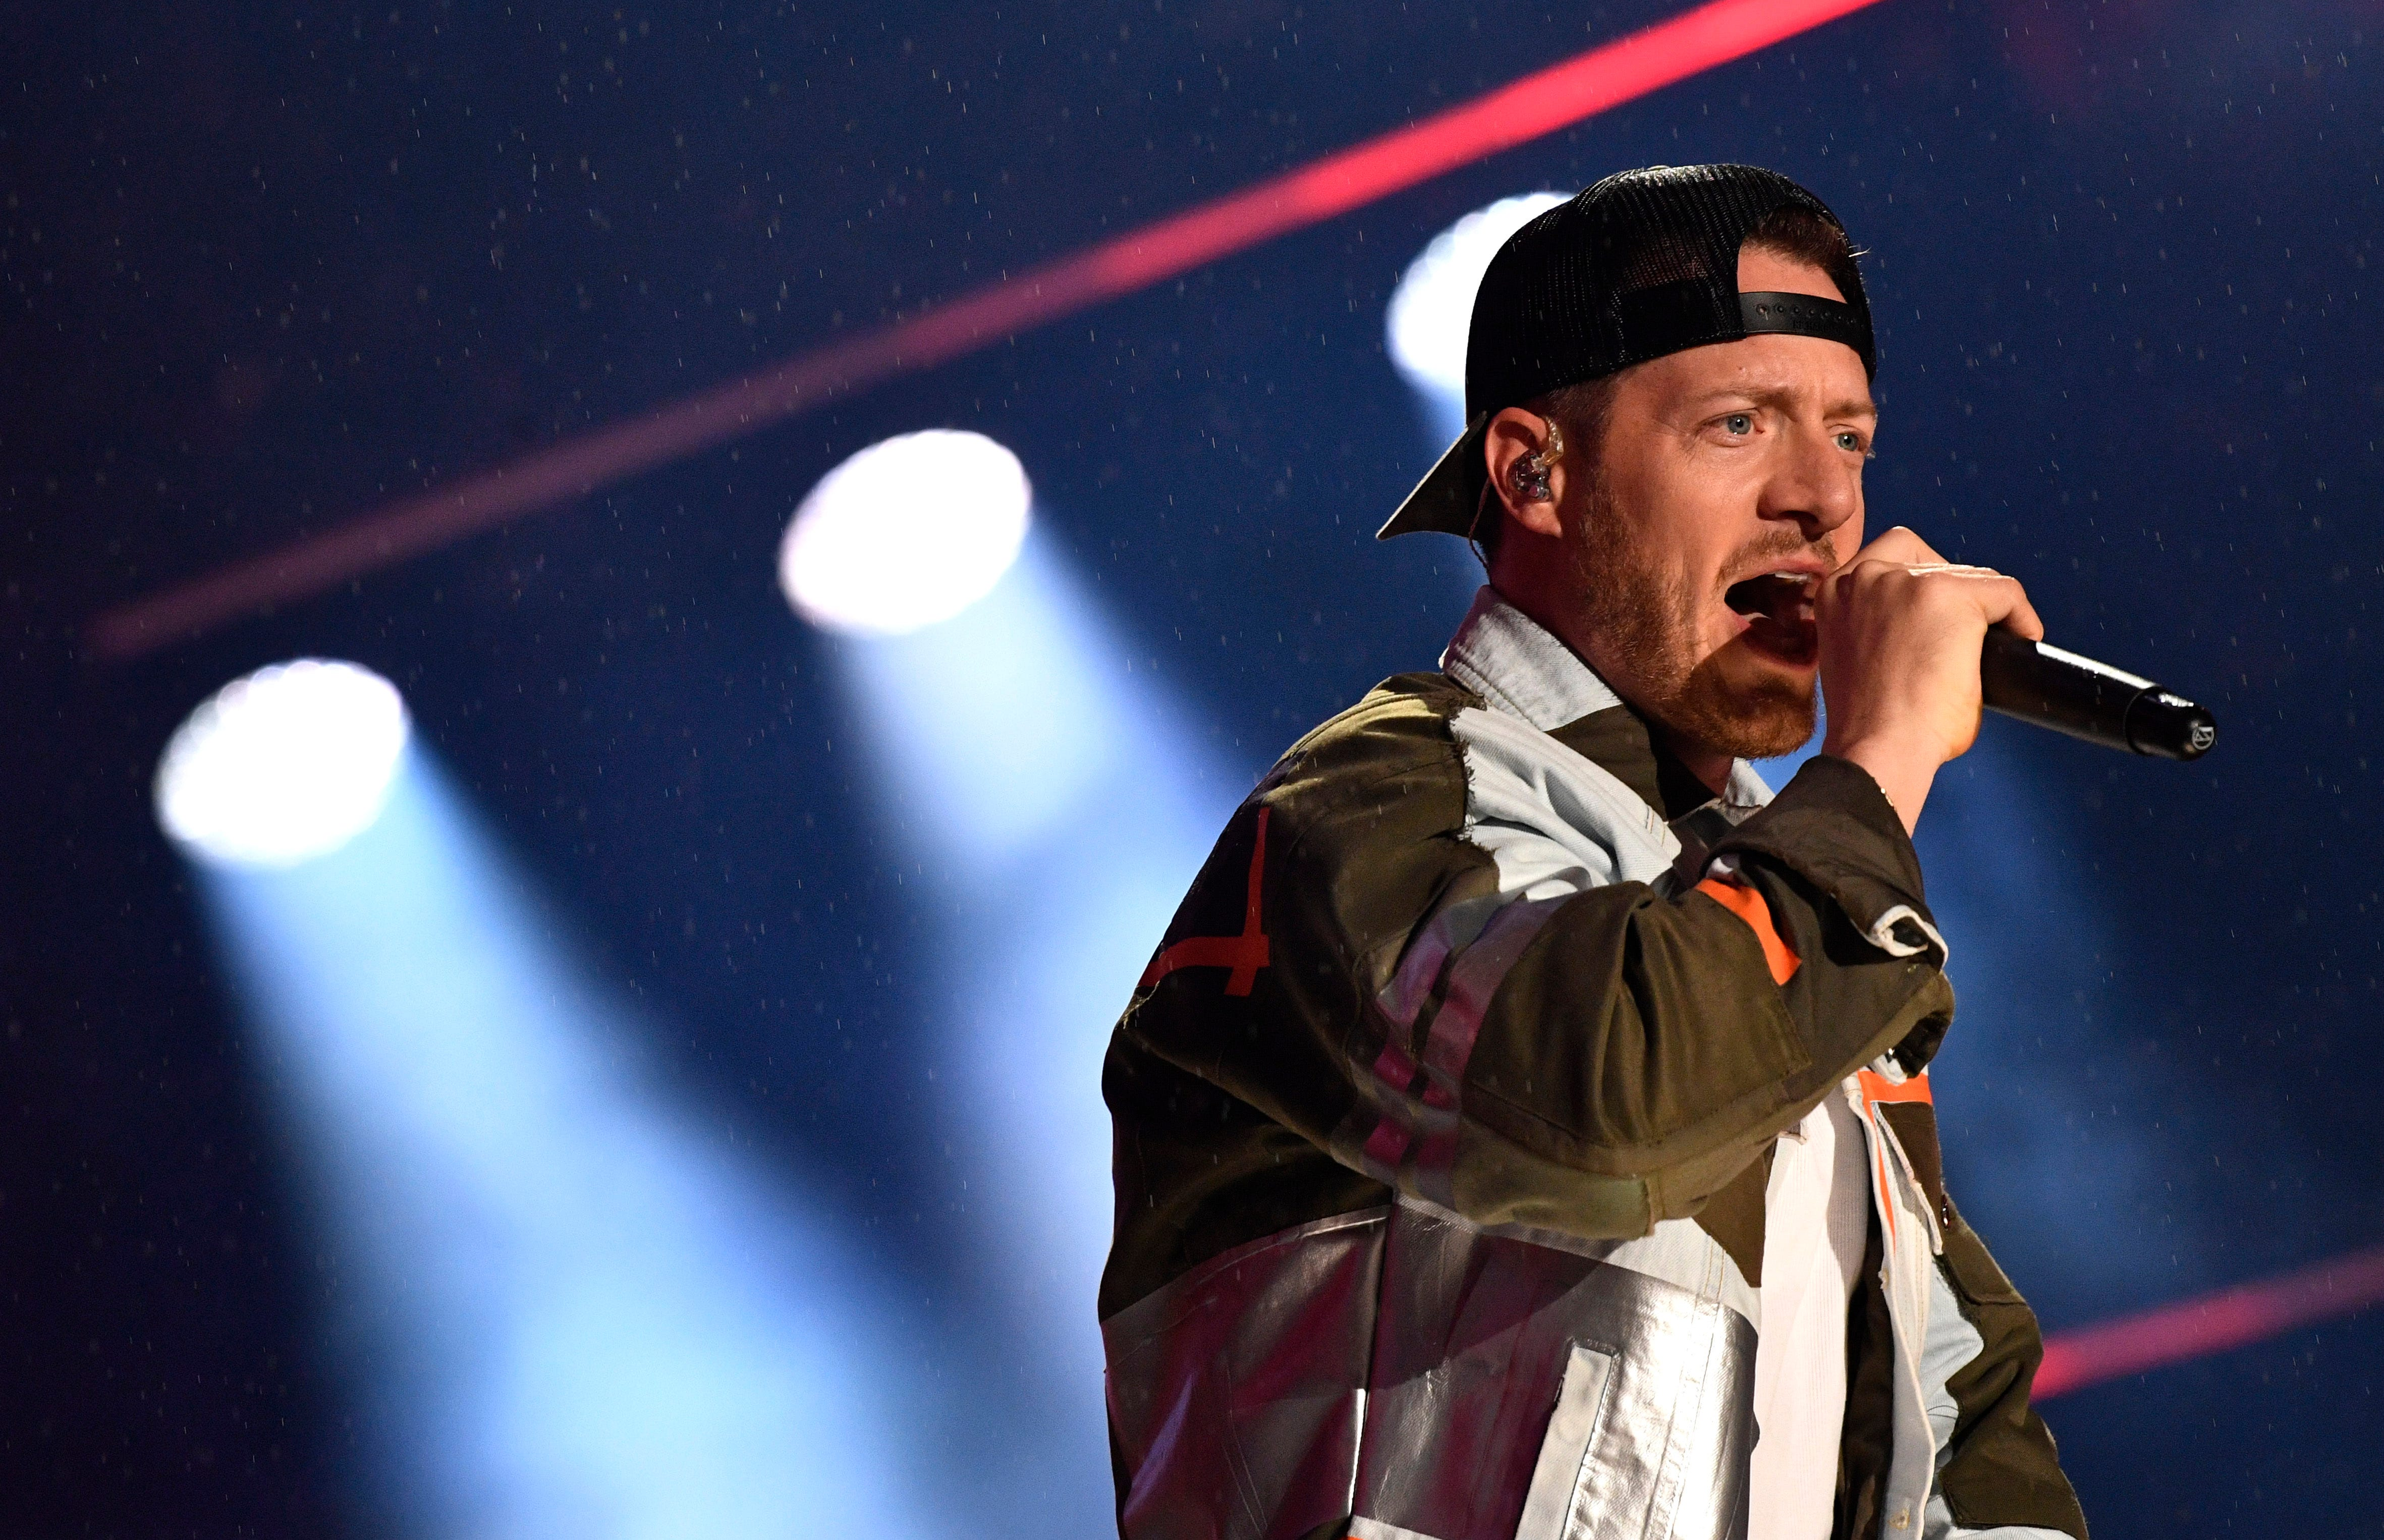 Florida Georgia Line s Tyler Hubbard says he tested positive for COVID-19